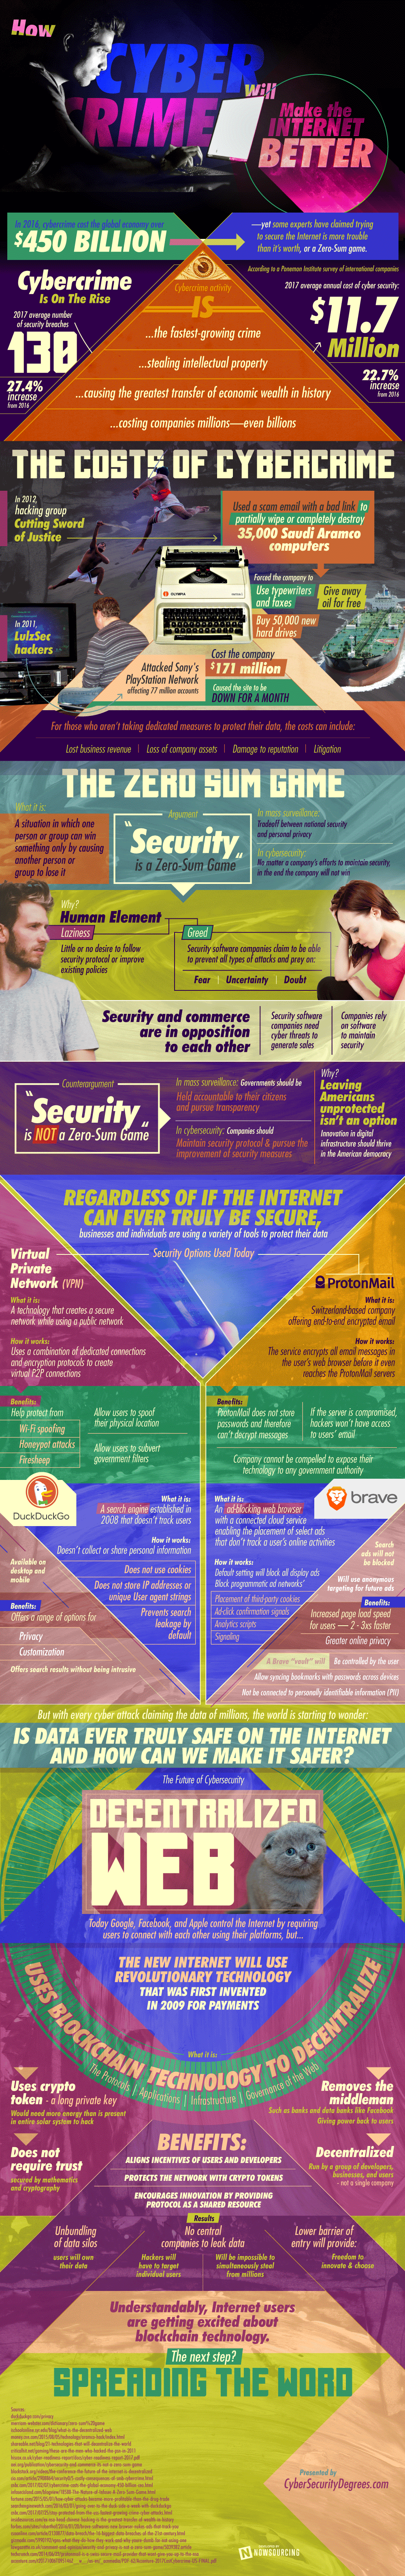 seawaves cyber insecurity 1